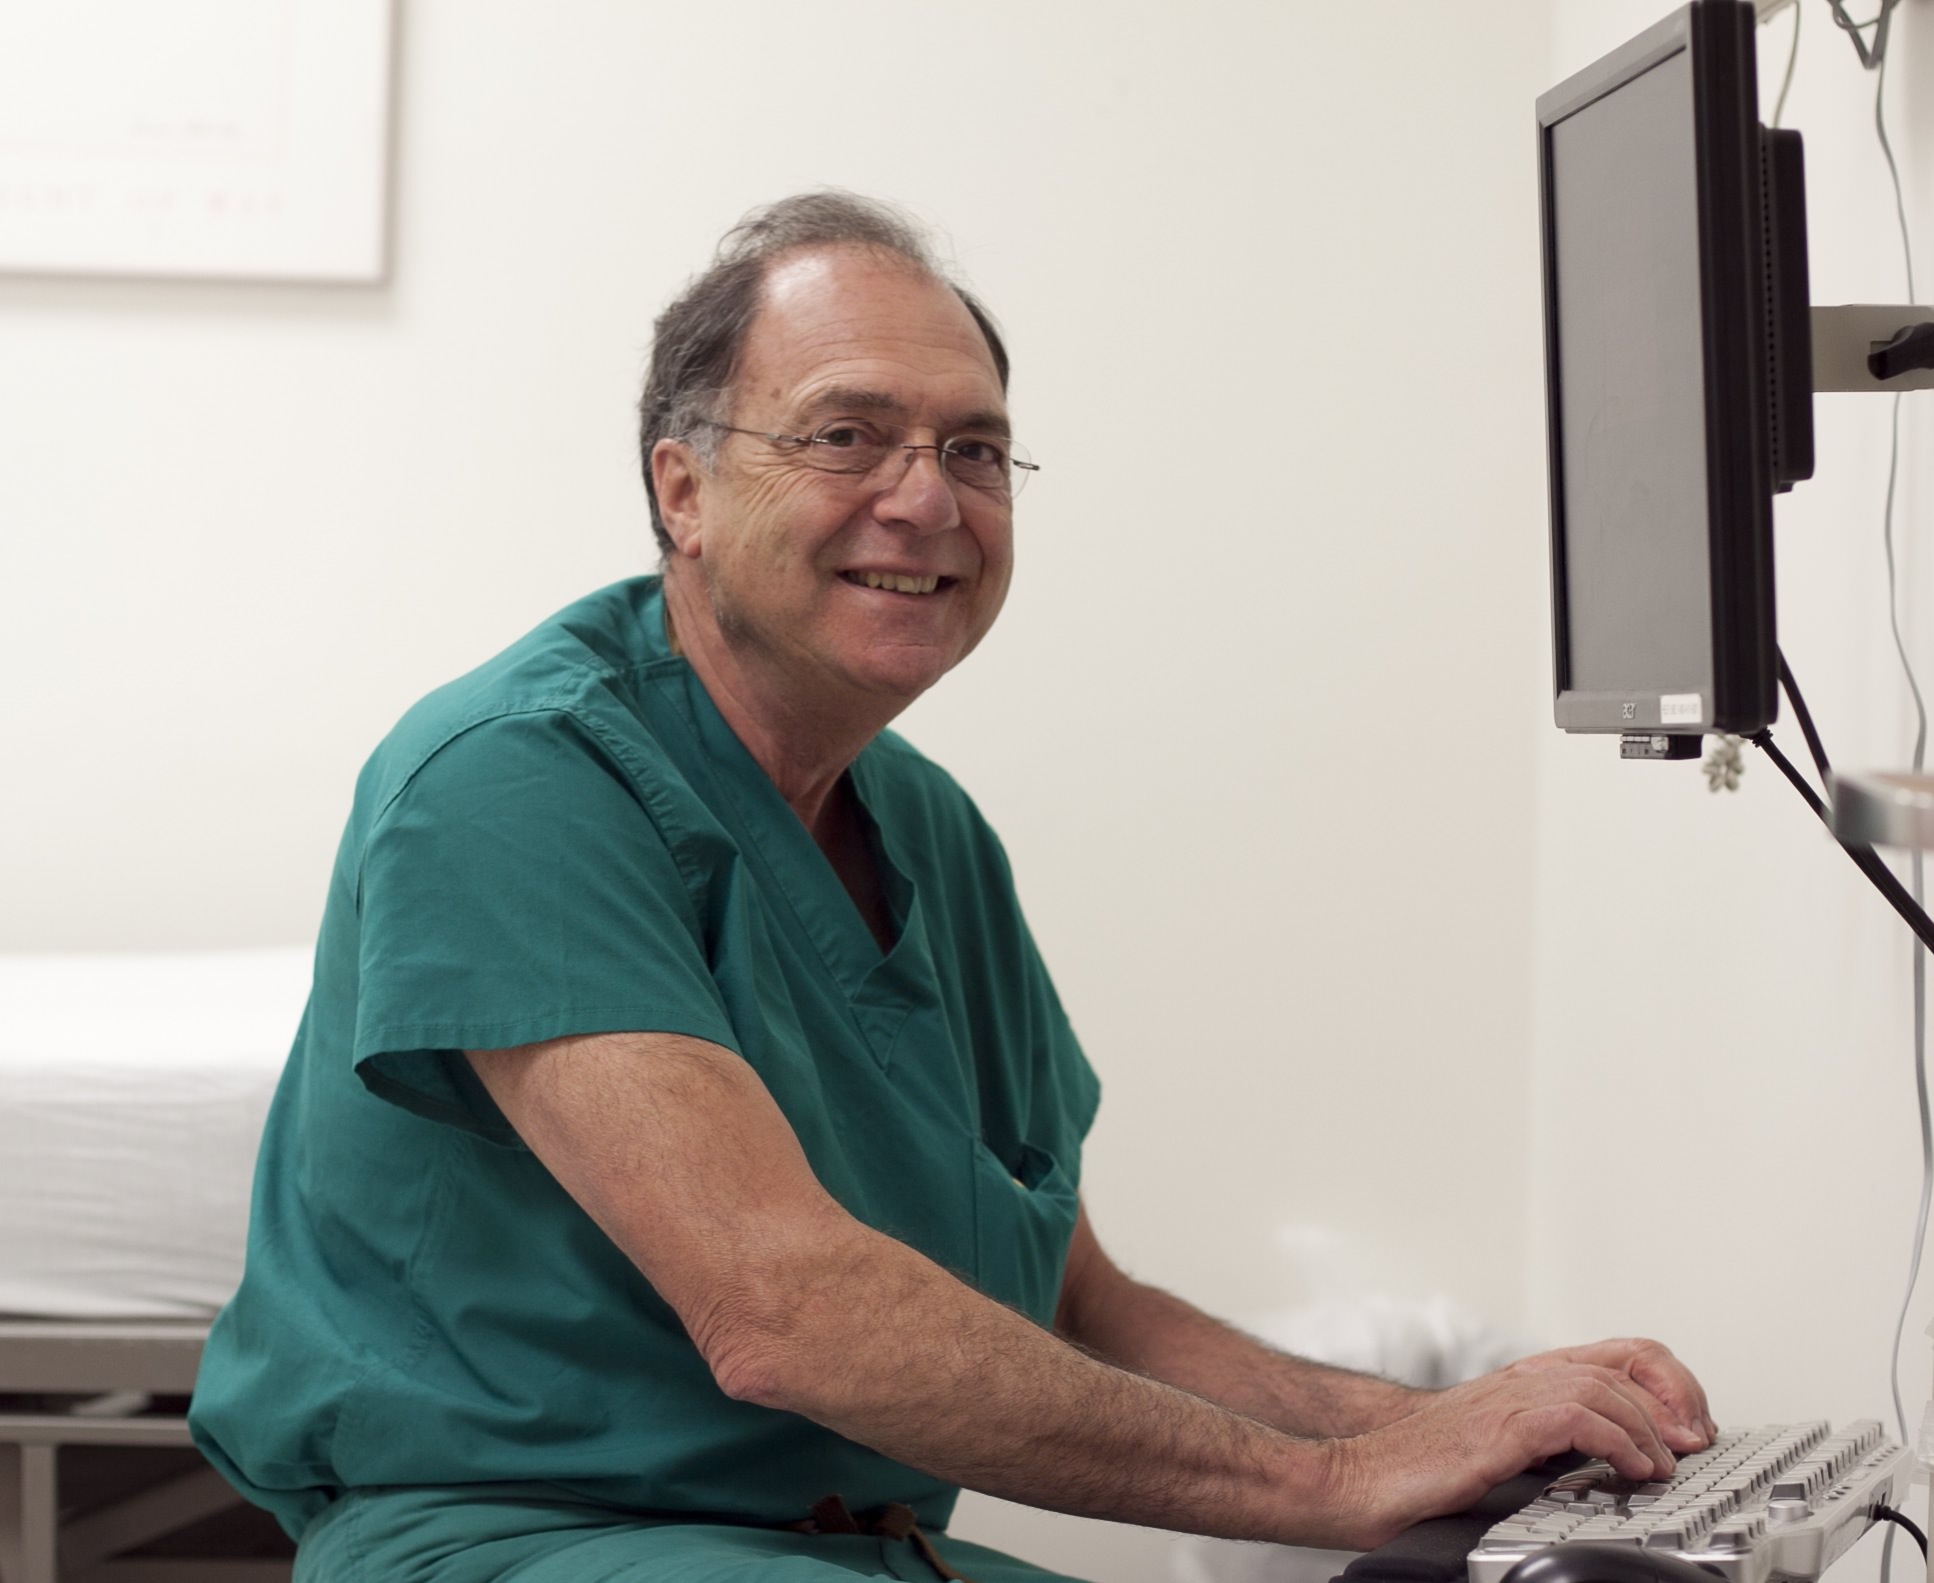 Dr. Lawrence Spingola, General Surgery